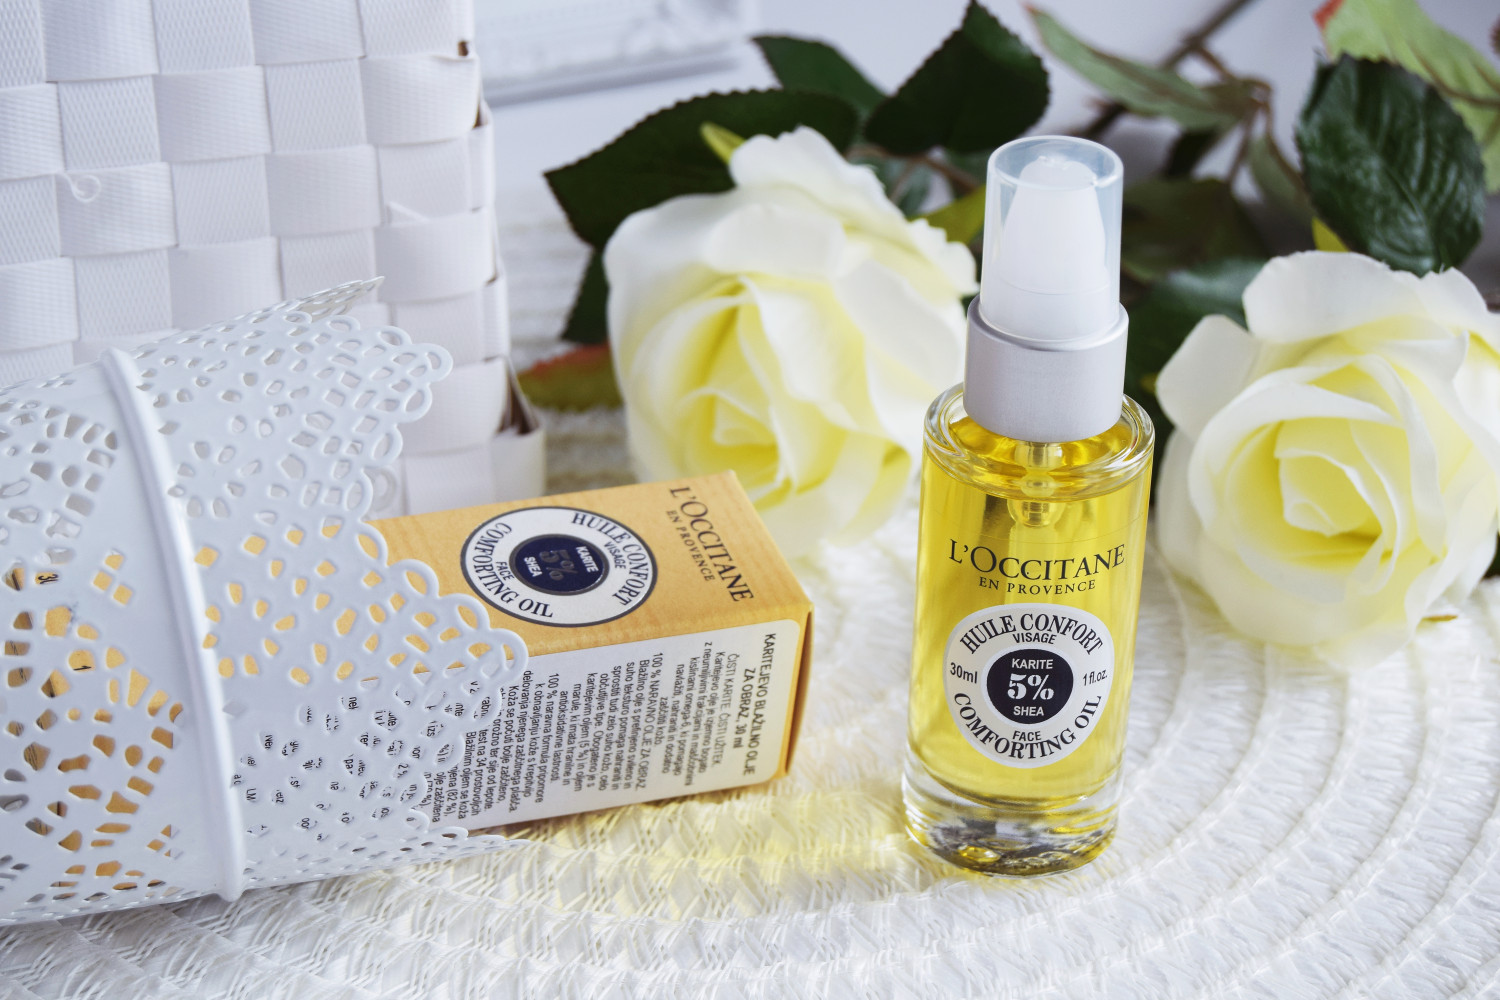 L'Occitane_face_oil_karite_shea_review_Zalabell_beauty_5